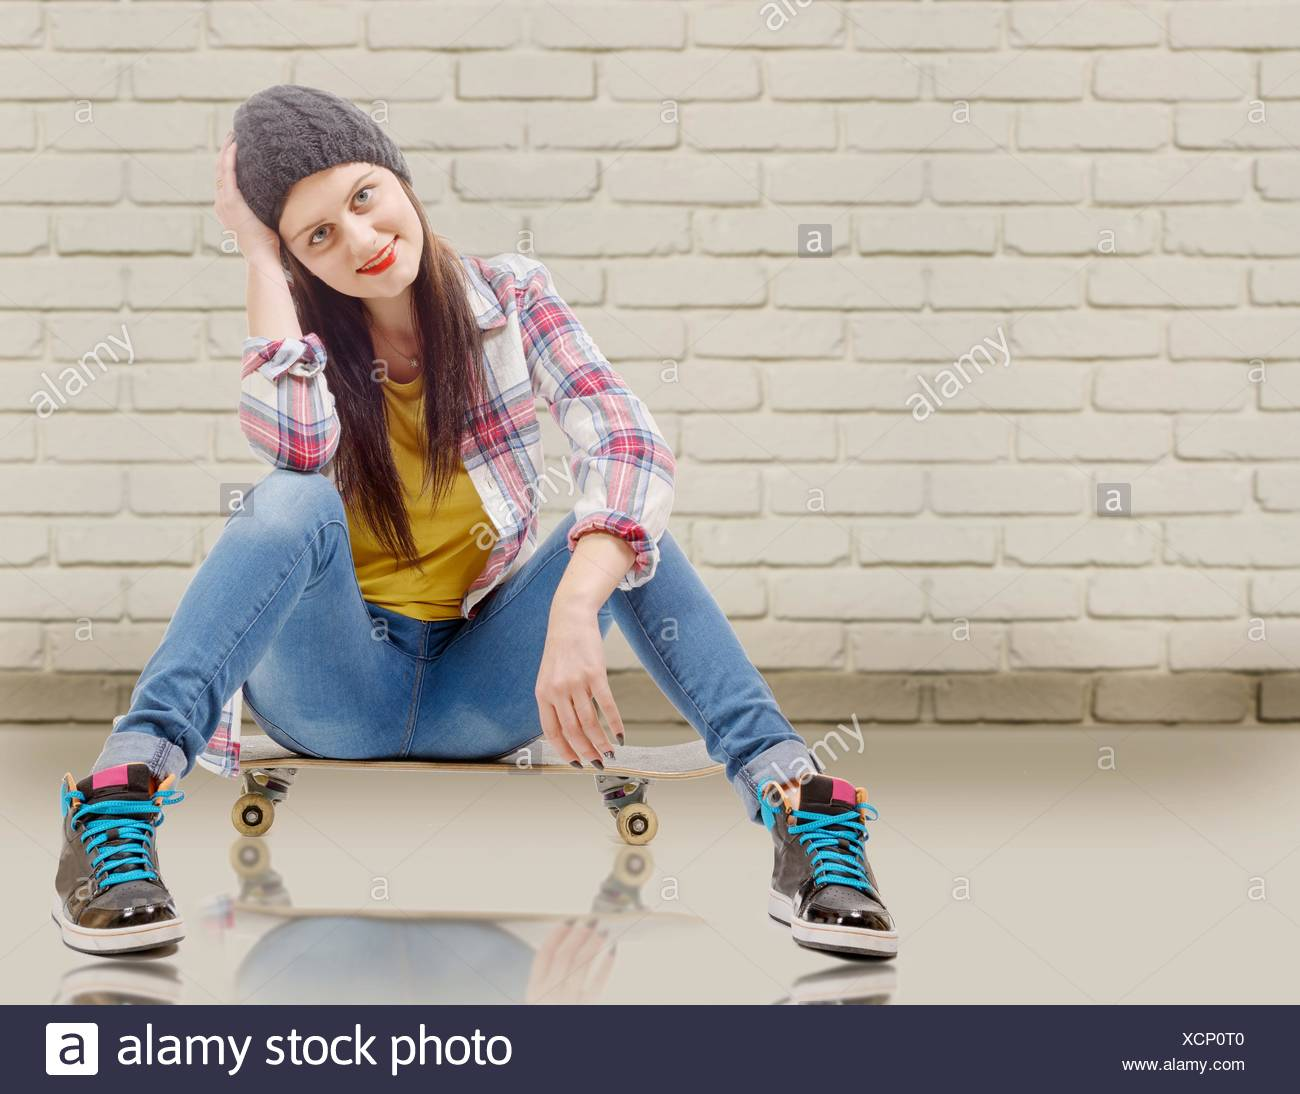 25abec96e0f Beautiful young woman posing with a skateboard